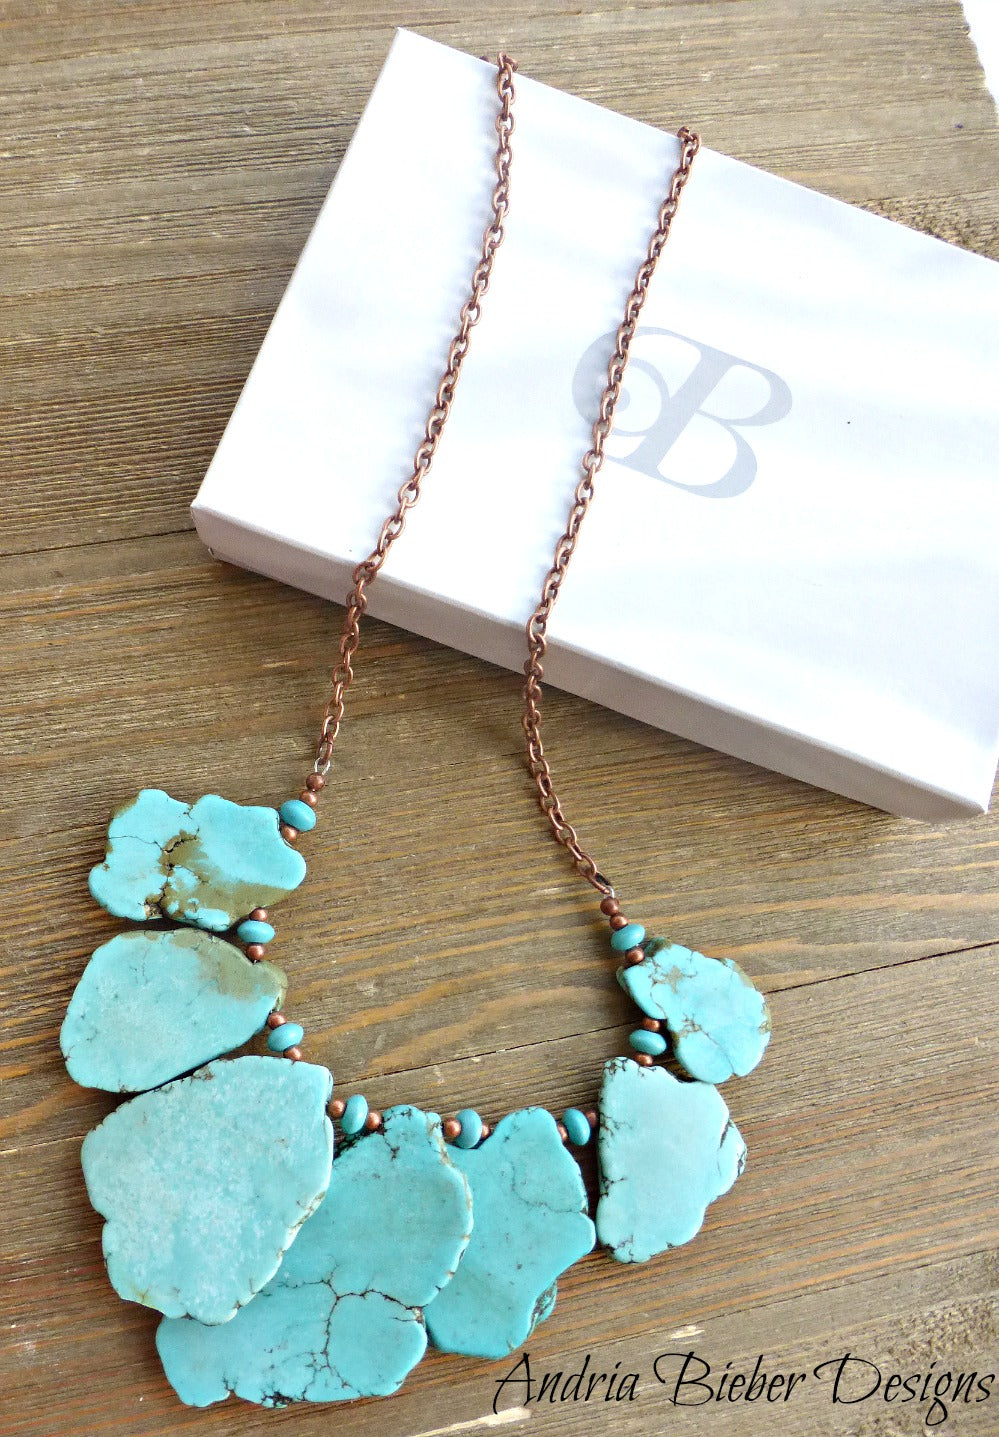 Turquoise howlite slab and beads chunky lightweight